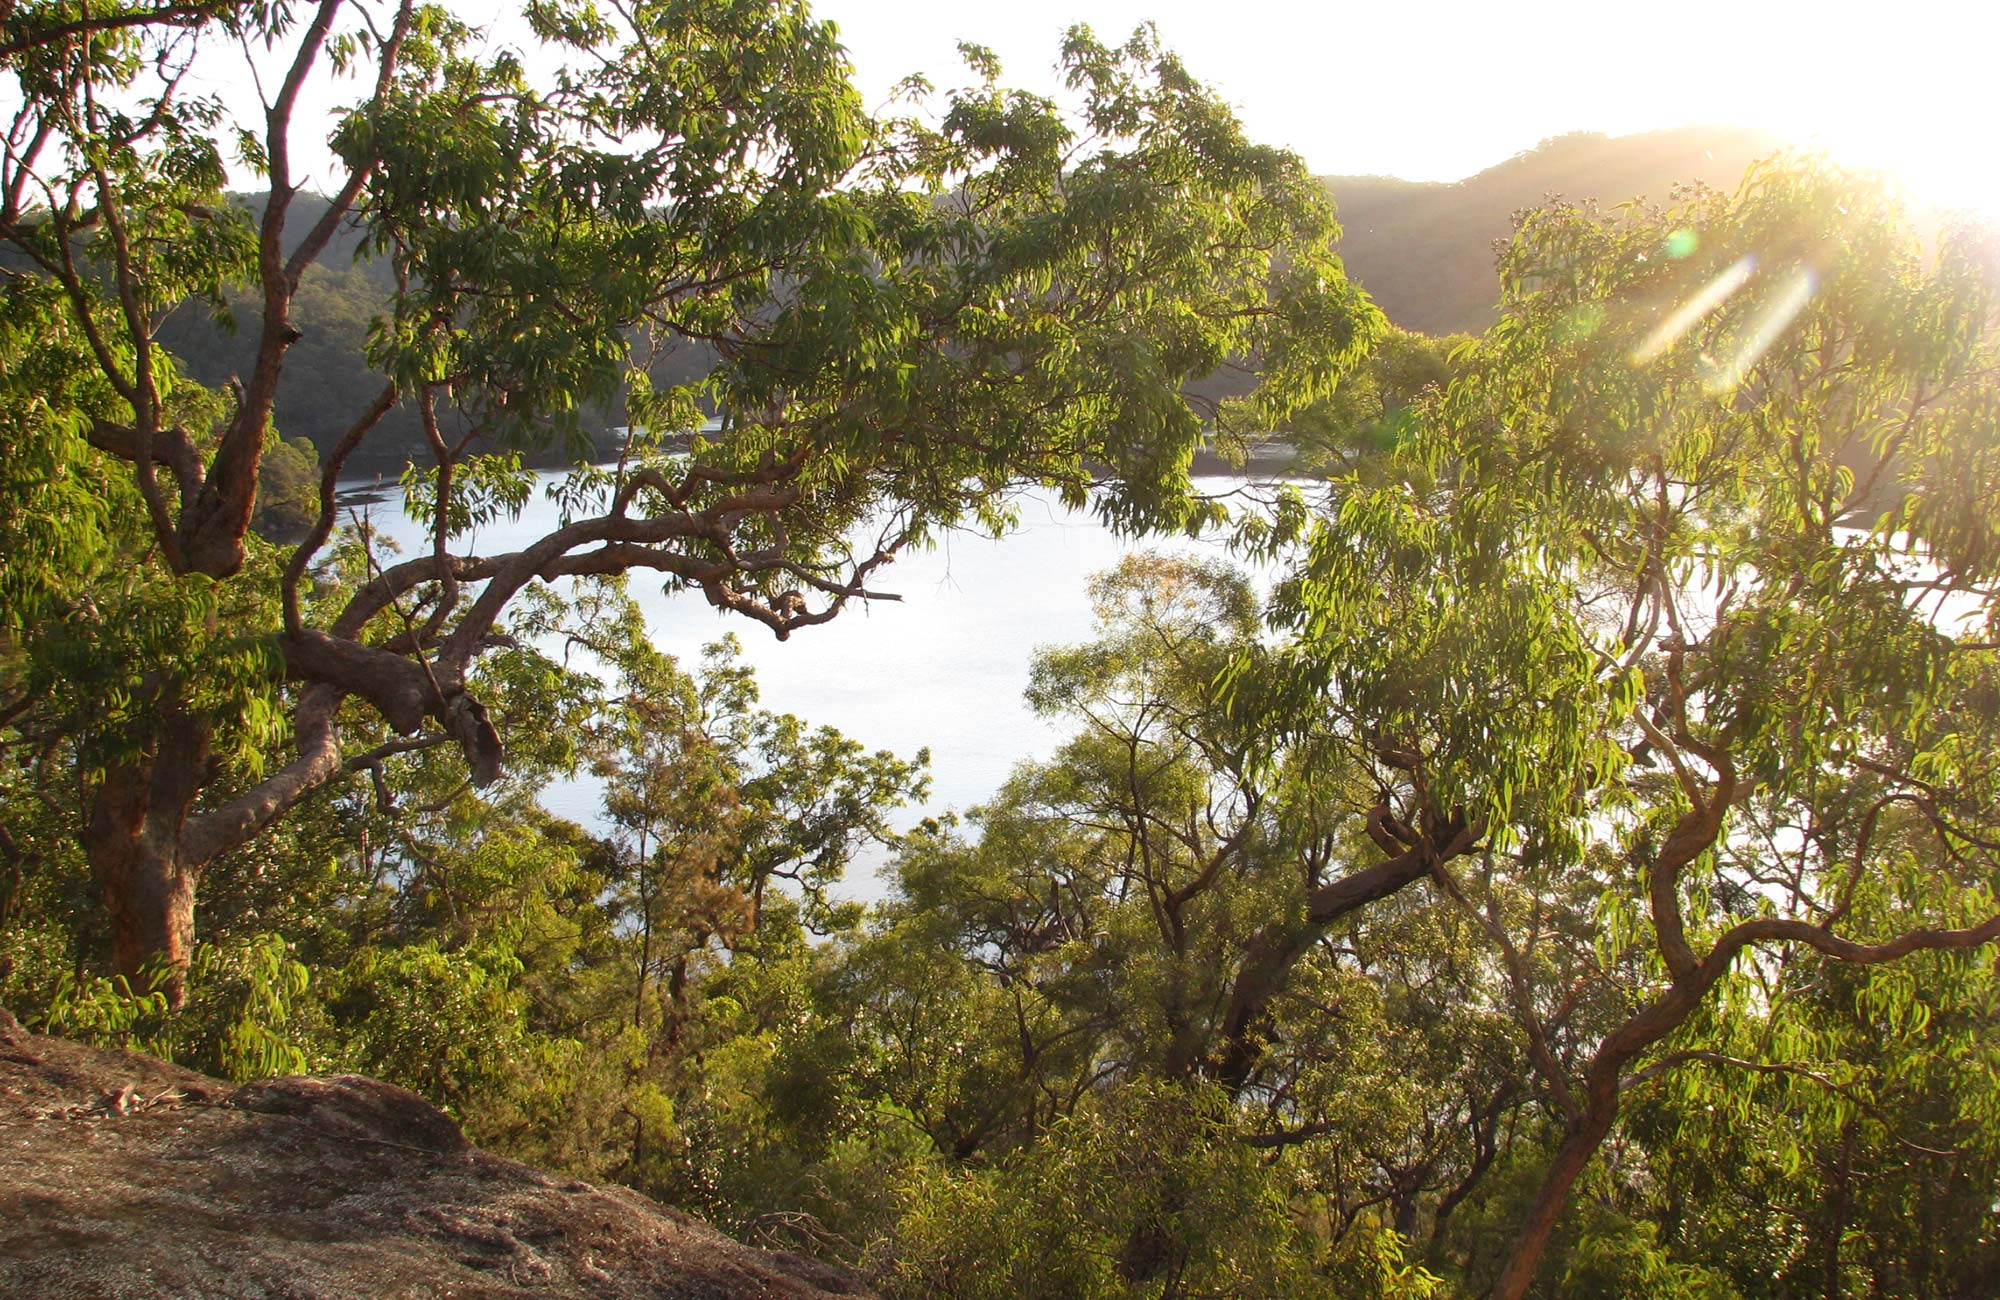 Sunrise view through angophora trees to Berowra Creek, from Coba Ridge walking track, Marramarra National Park. Photo: Tegan Burton/OEH